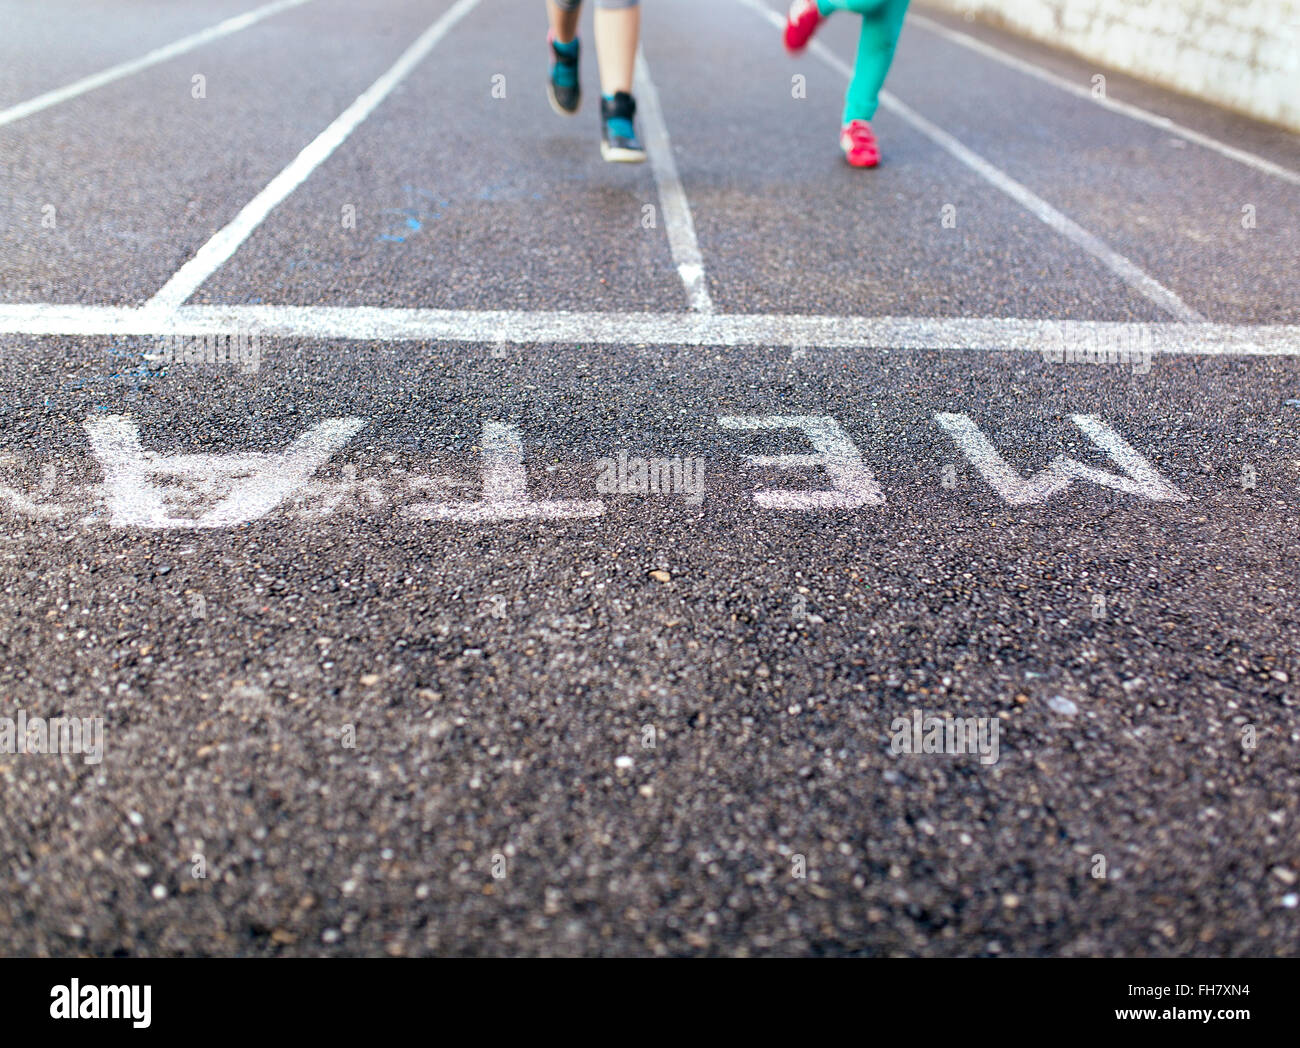 Legs of two running girls on tarmac - Stock Image